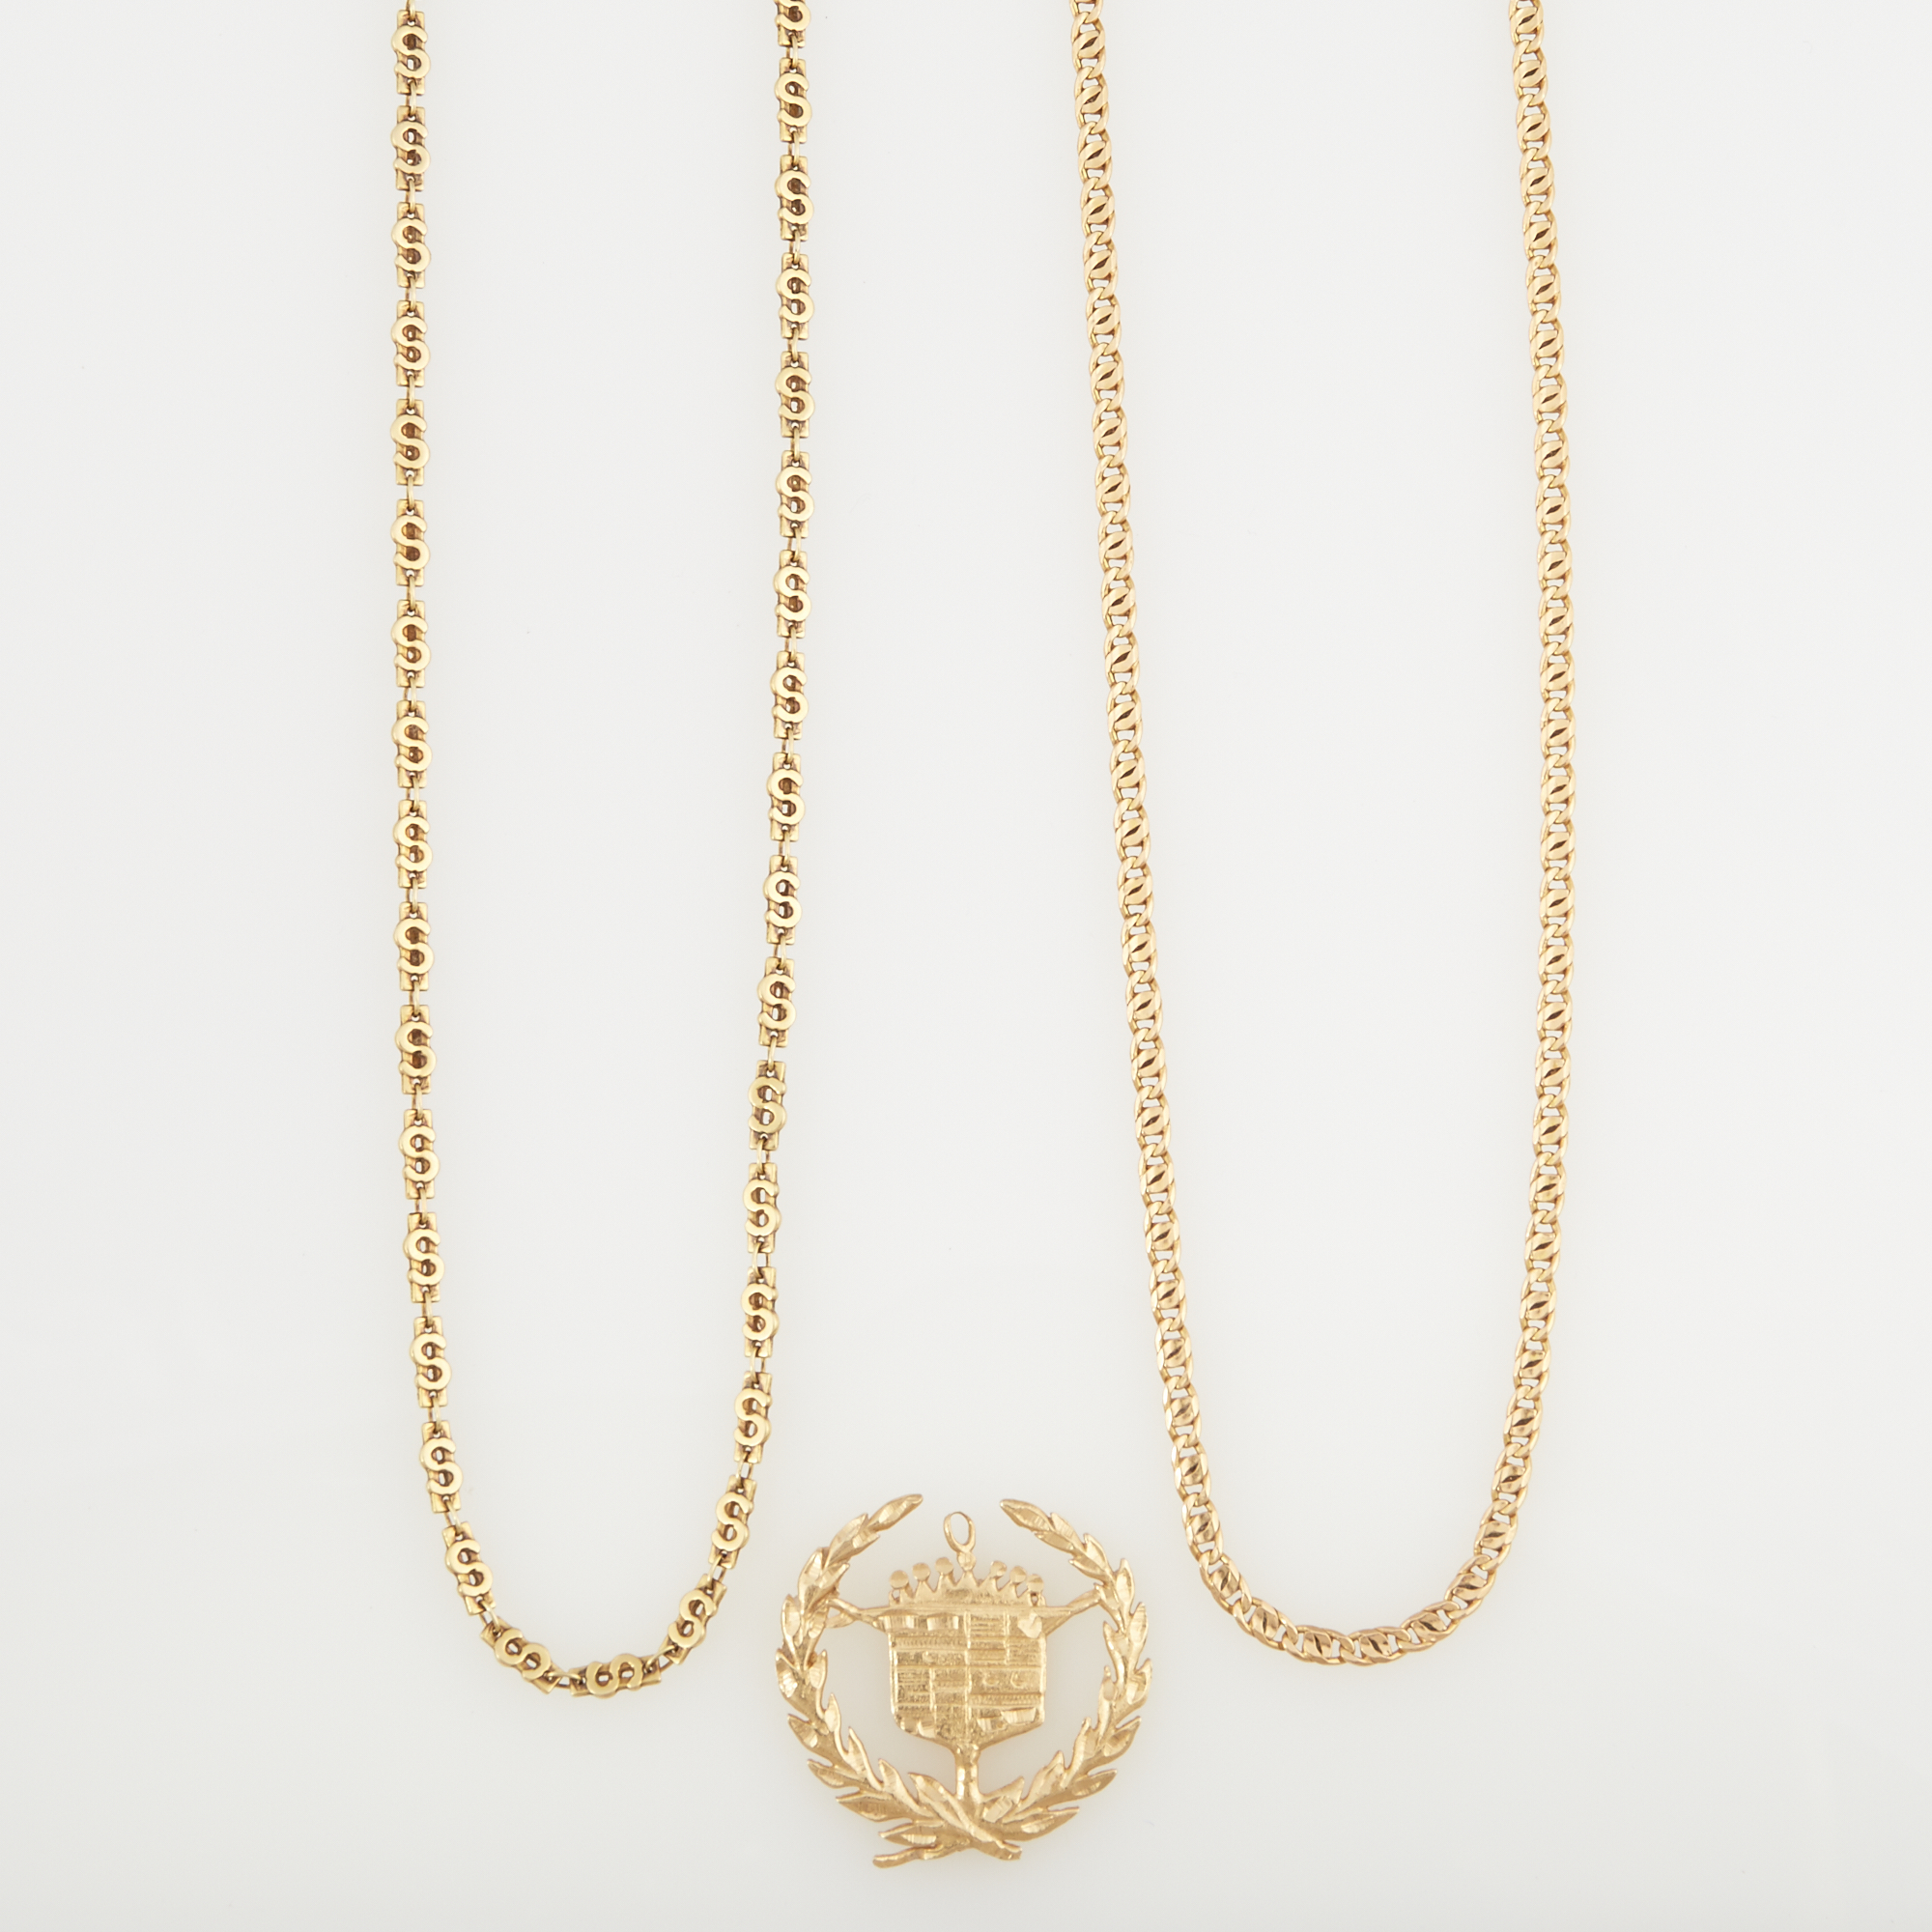 Lot image - Gold Pendant and Two Neck Chains, 14K 18 dwt.